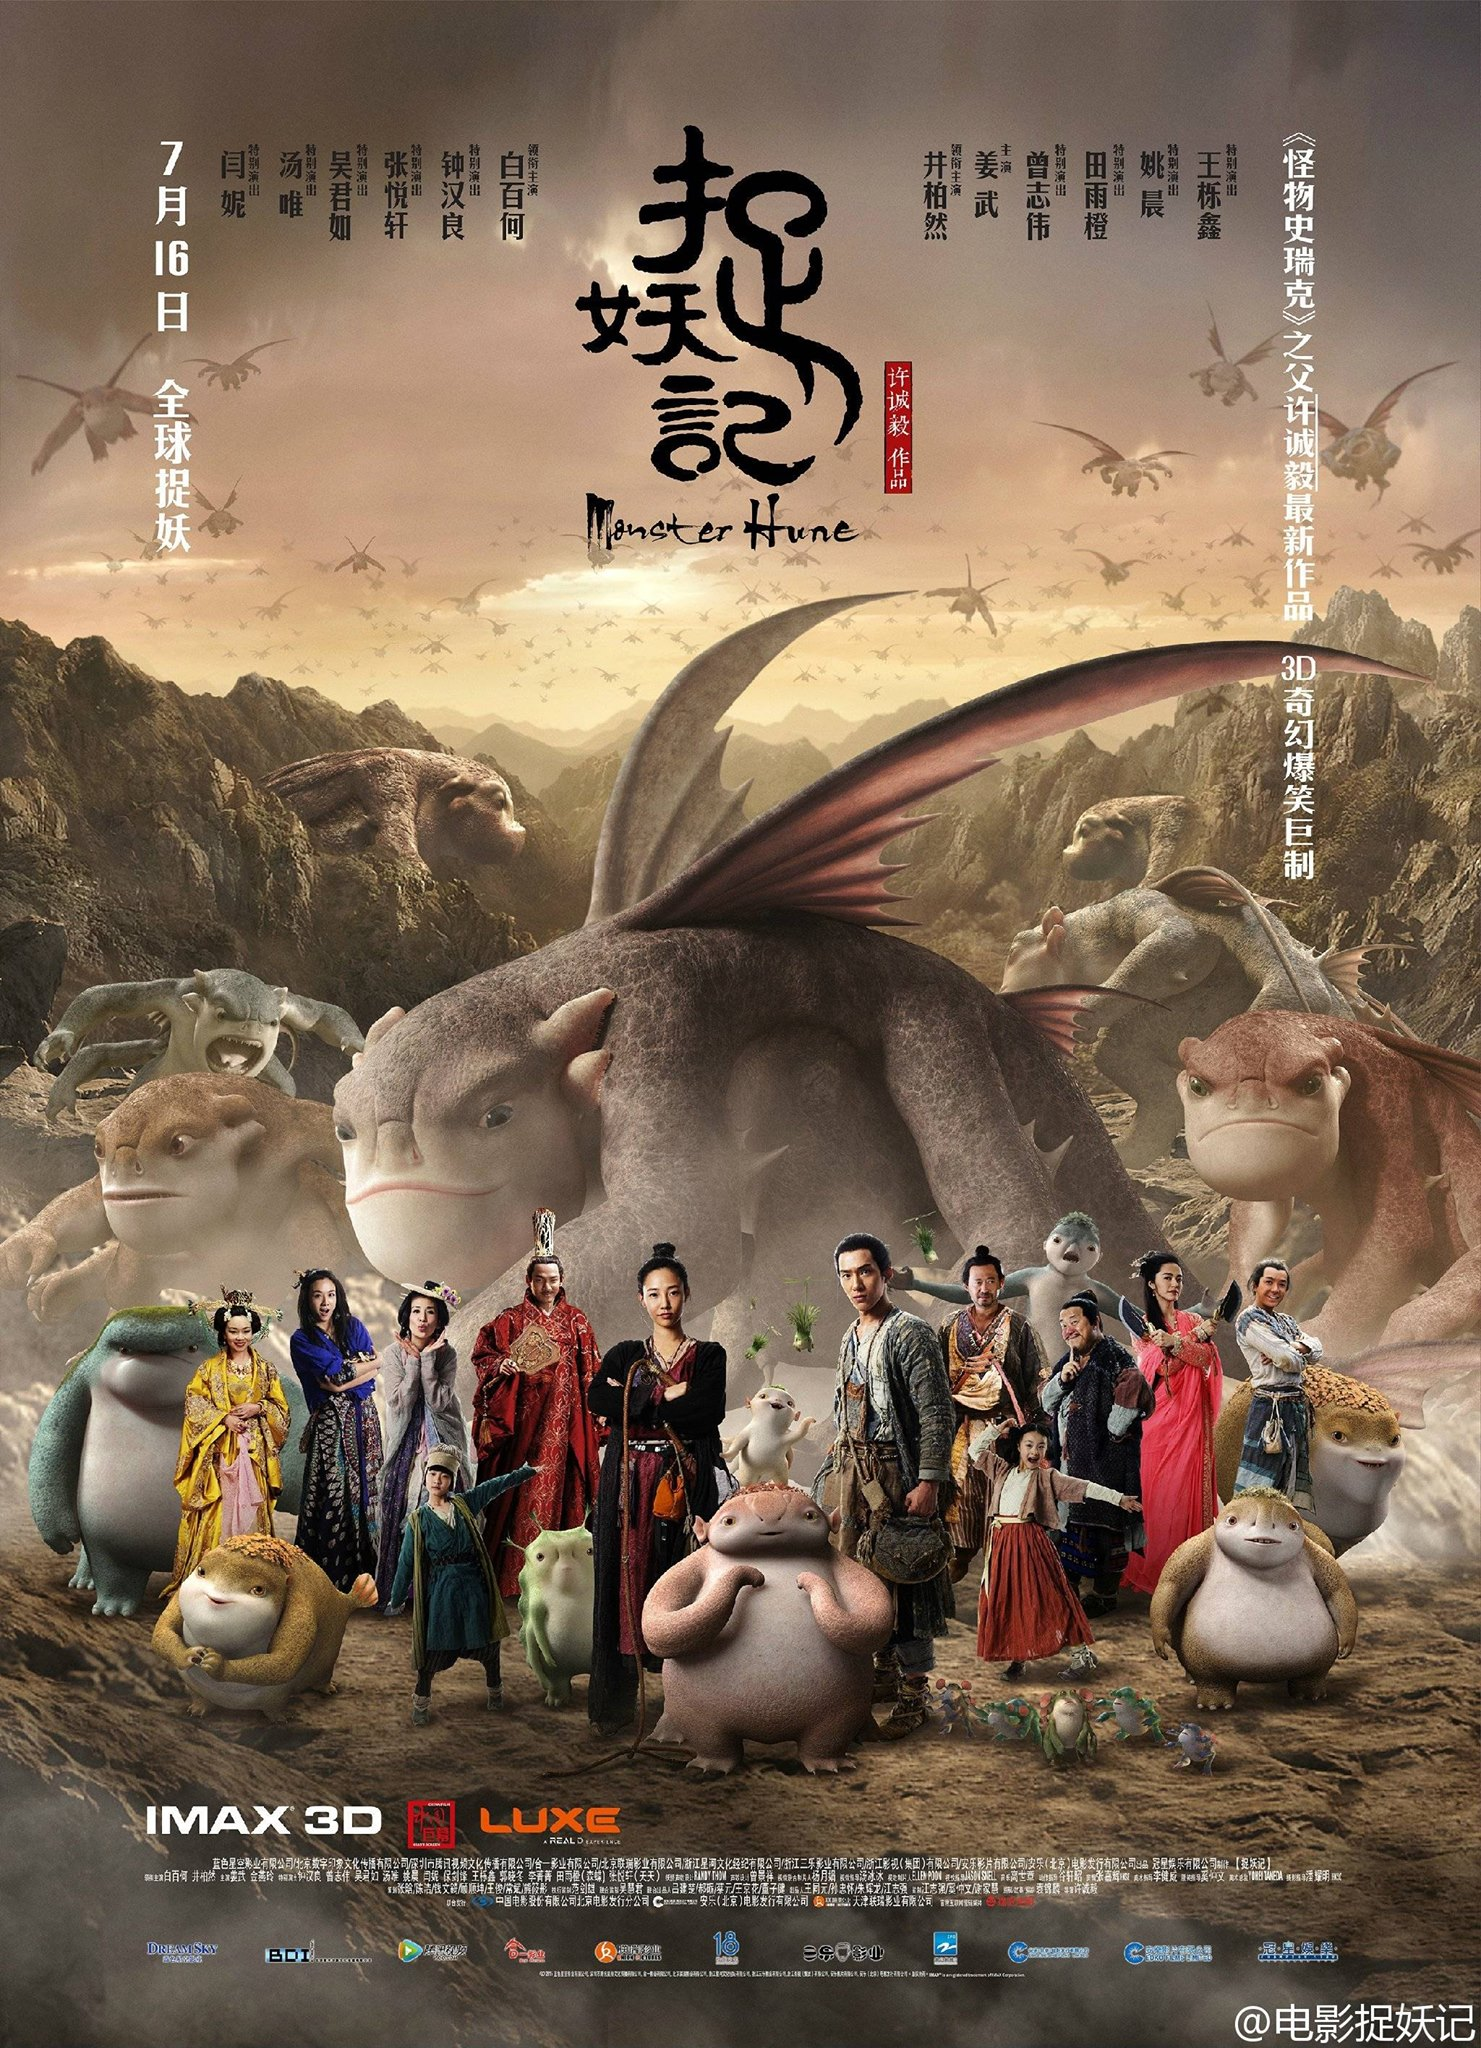 Monster Hunt - Official Trailer